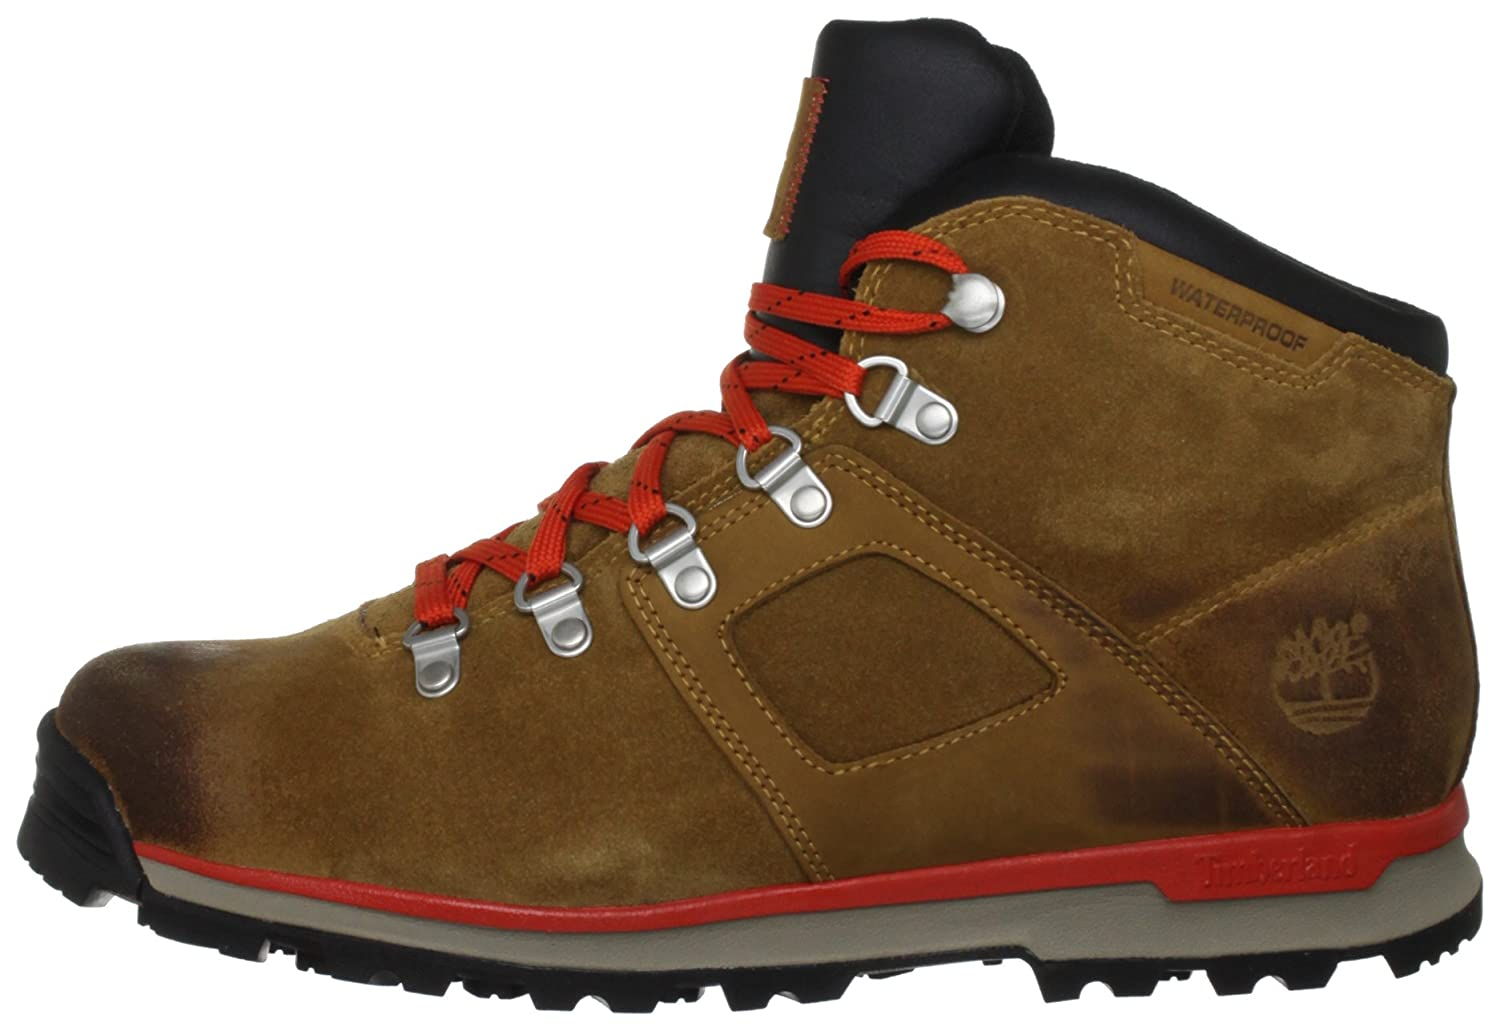 Timberland Earthkeepers Gt pQXaRy5BT3